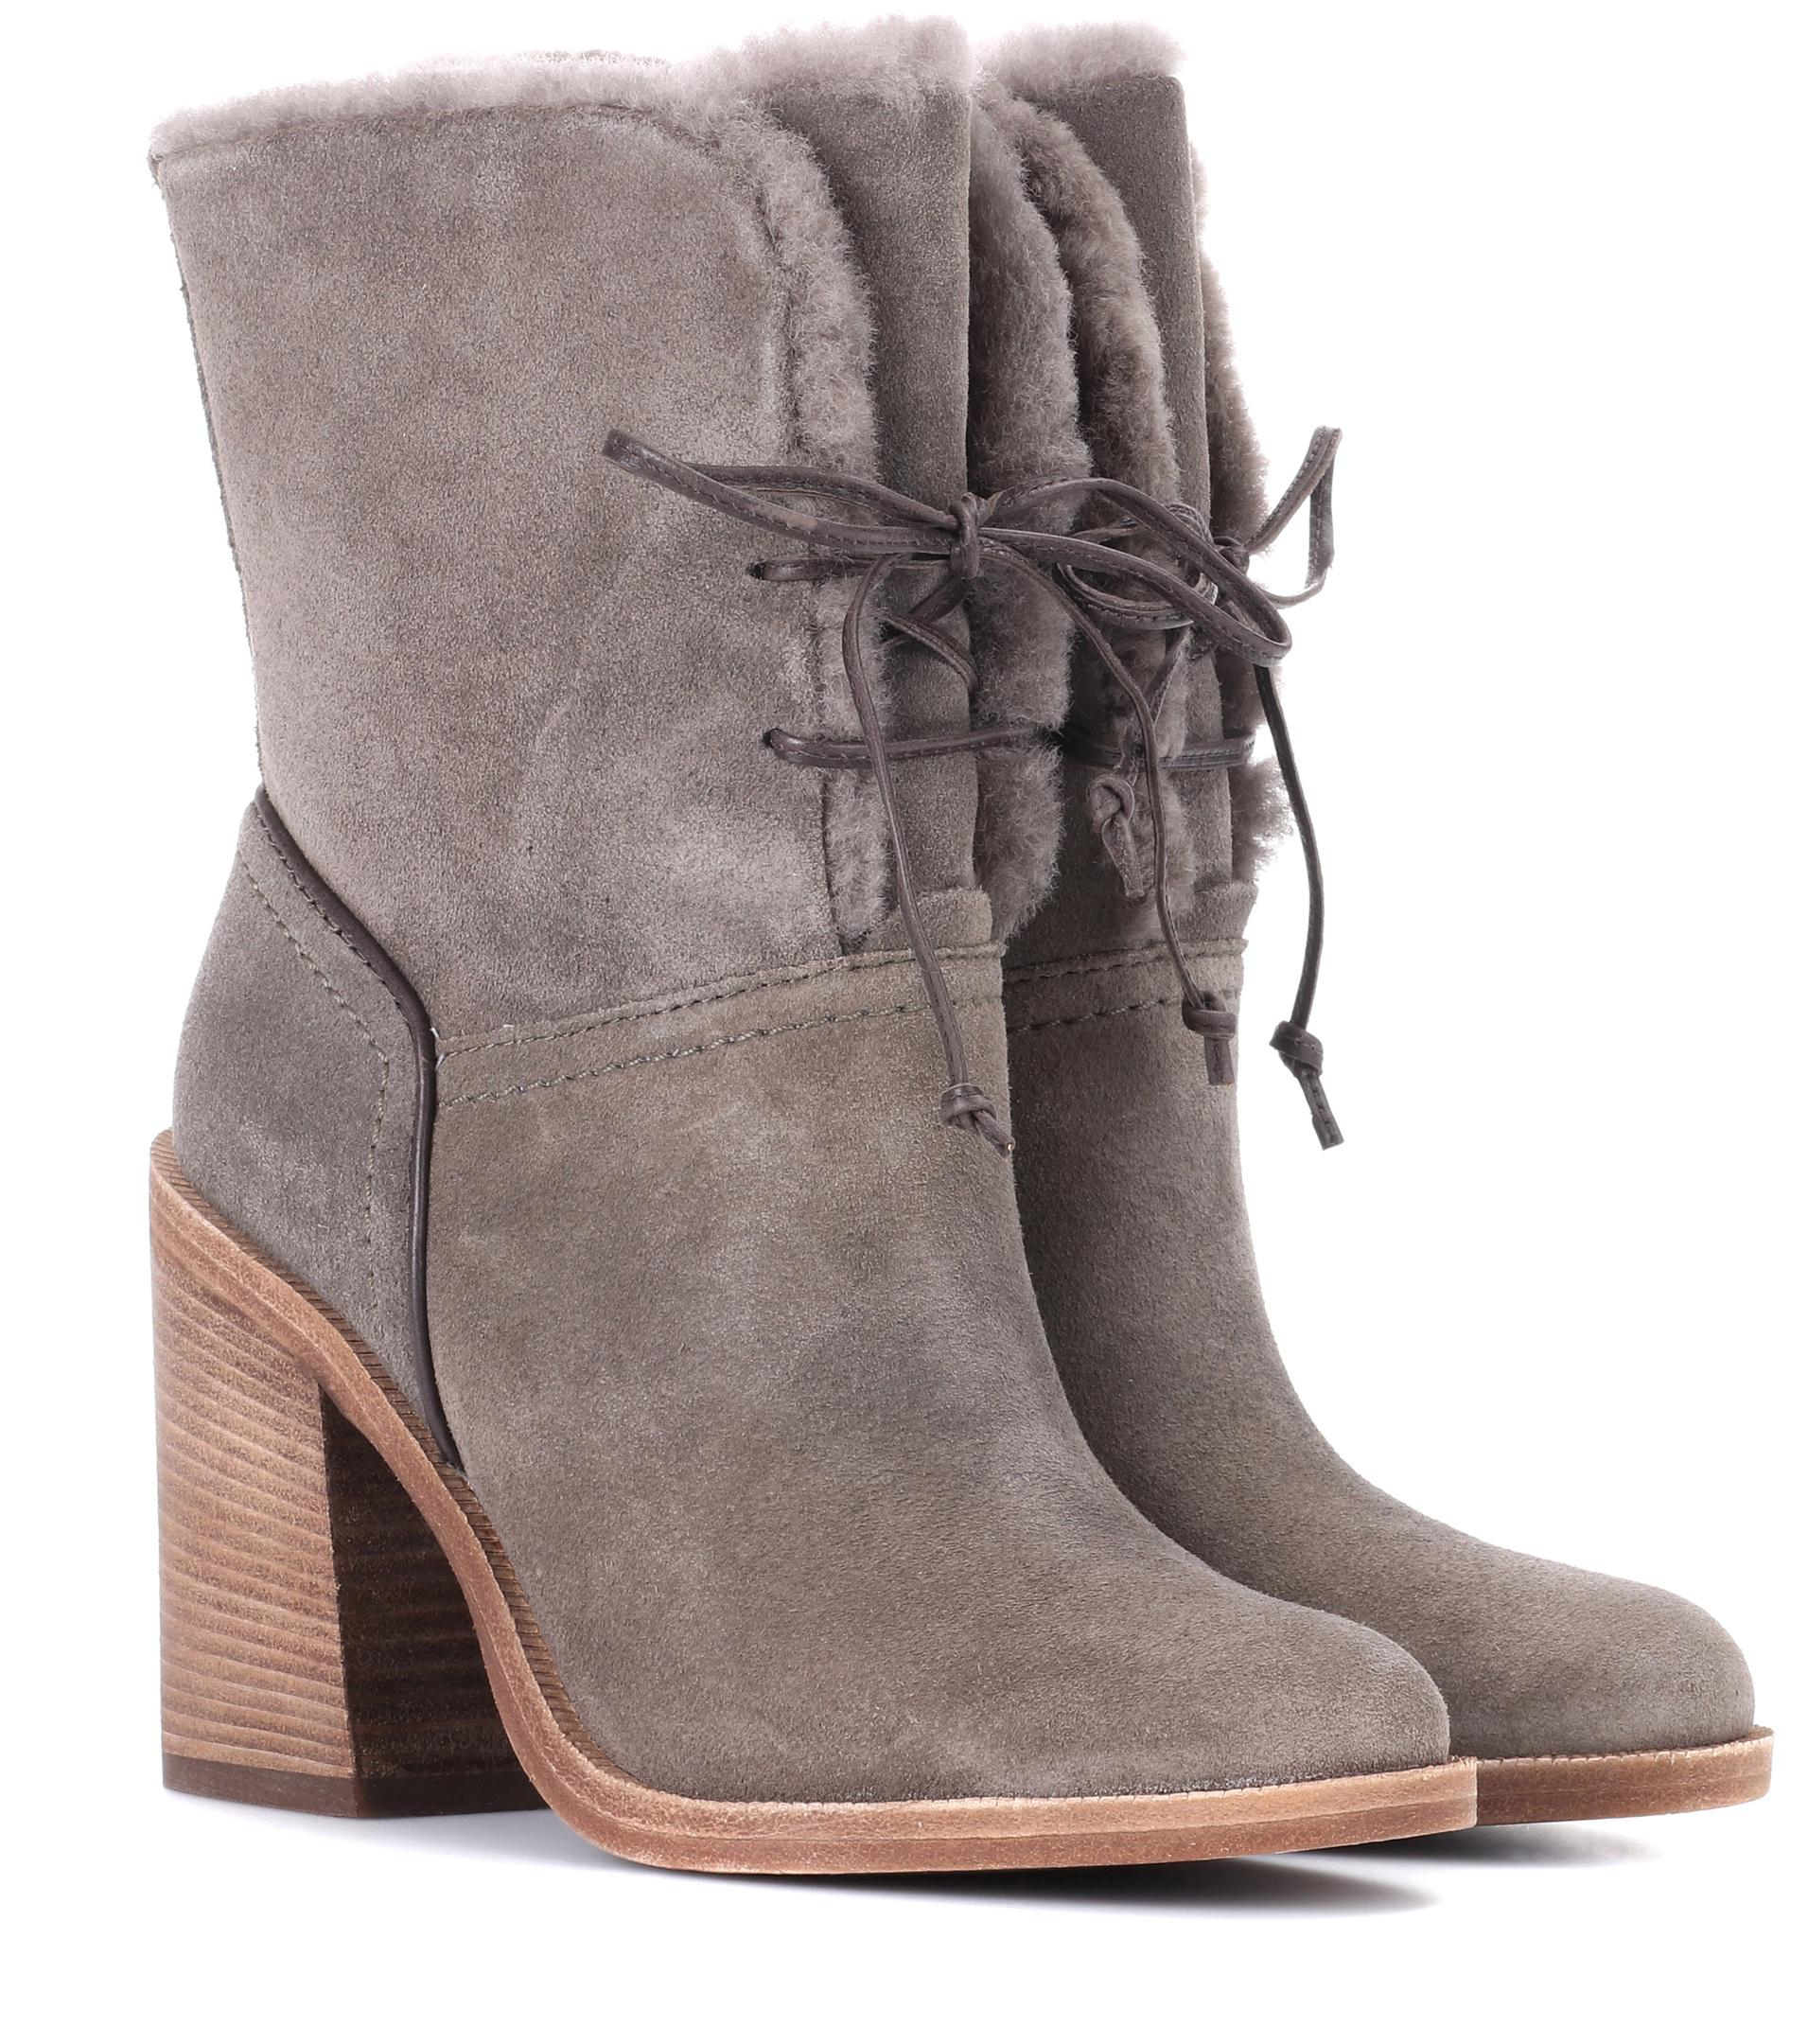 Visit New Cheap Price UGG Jerene suede ankle boots Clearance Low Cost Hot Sale Cheap Price Hot Sale rVnZ6Ca